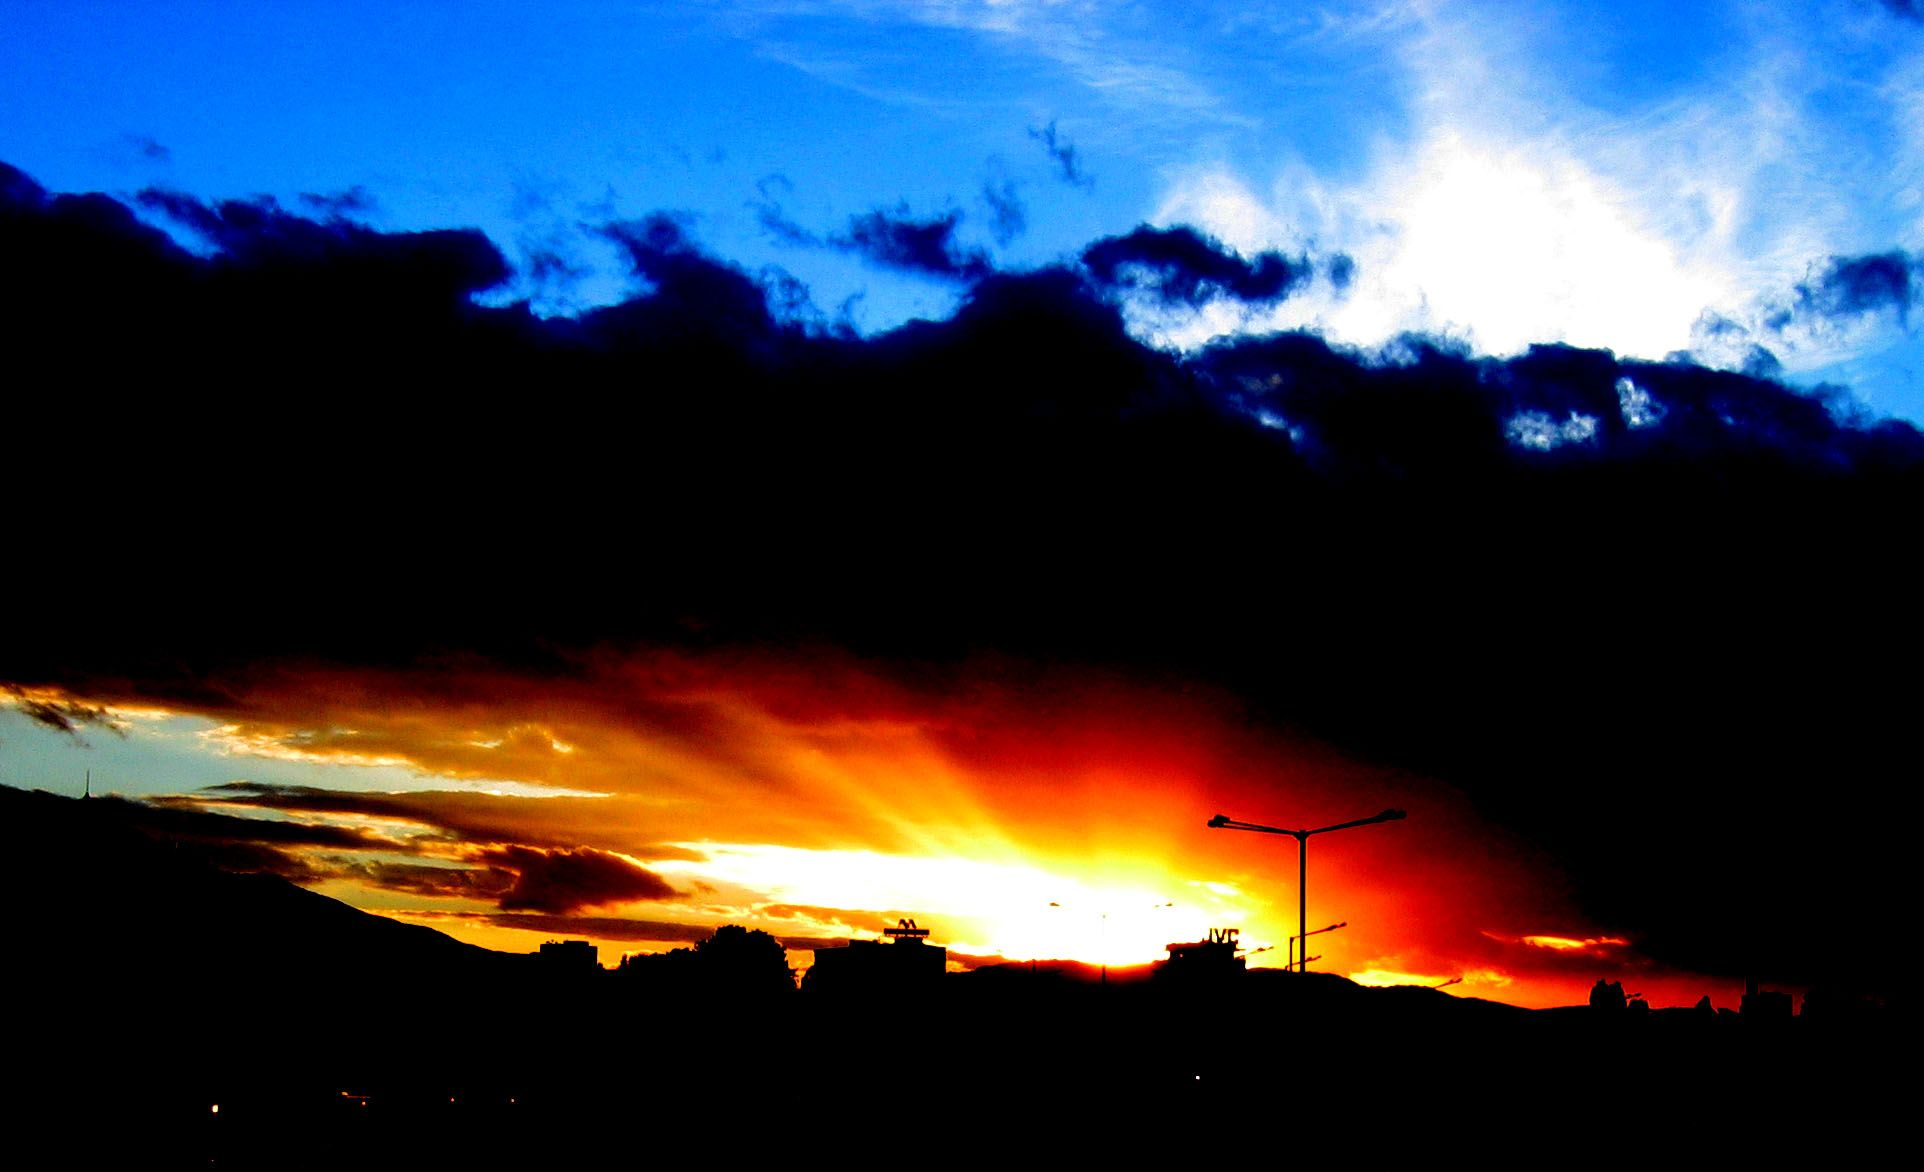 sunset | Contrast | Contrast photography, Example of ...